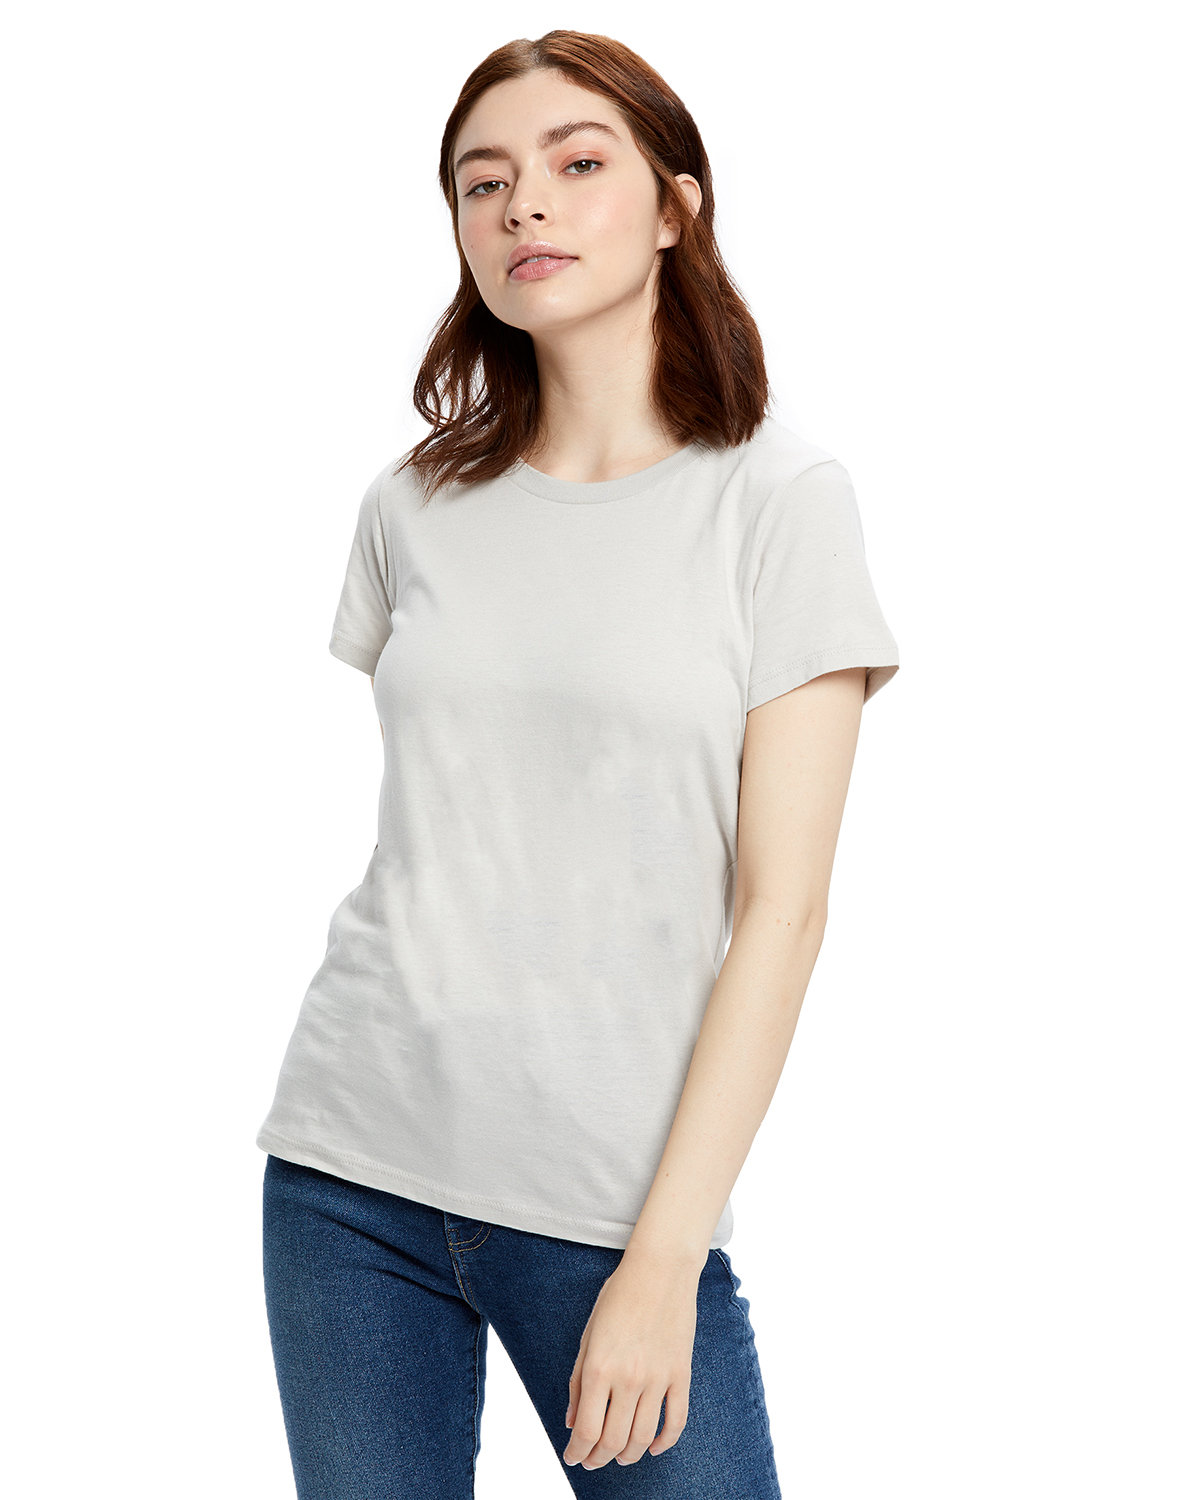 US Blanks Ladies' Made in USA Short Sleeve Crew T-Shirt SILVER